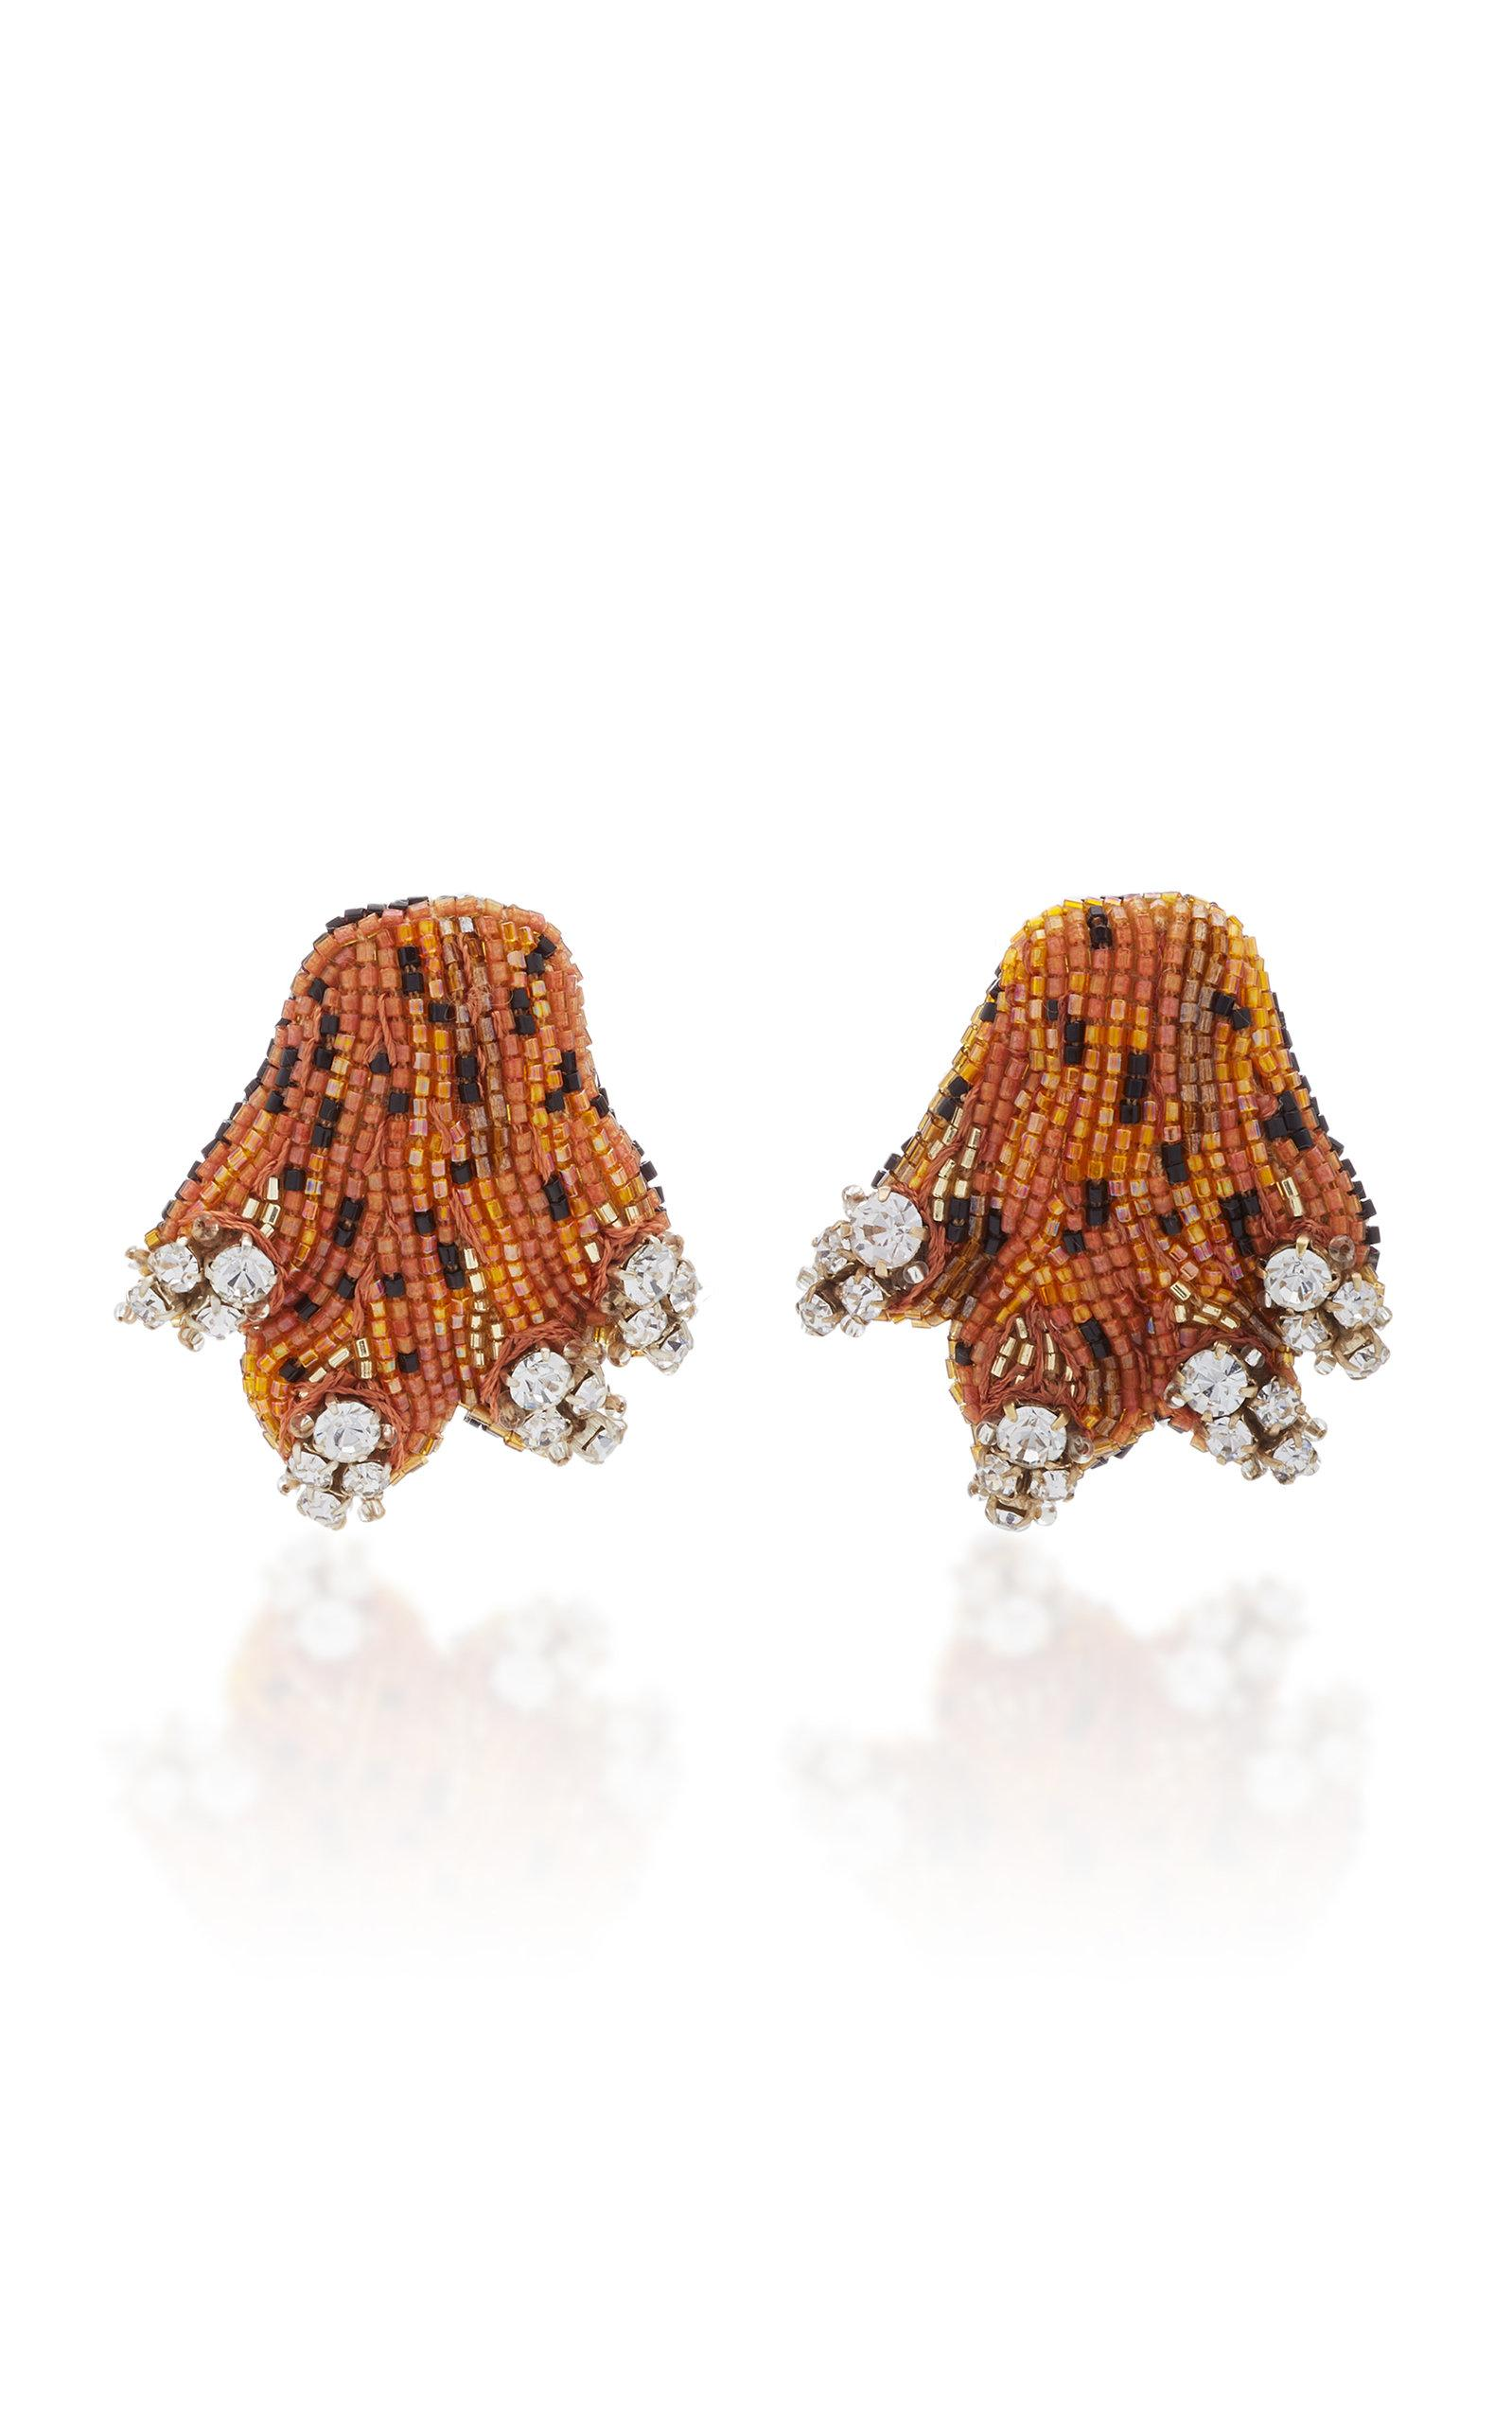 Rebecca De Ravenel Crystal Bead And Gold-plated Clip Earrings In Orange